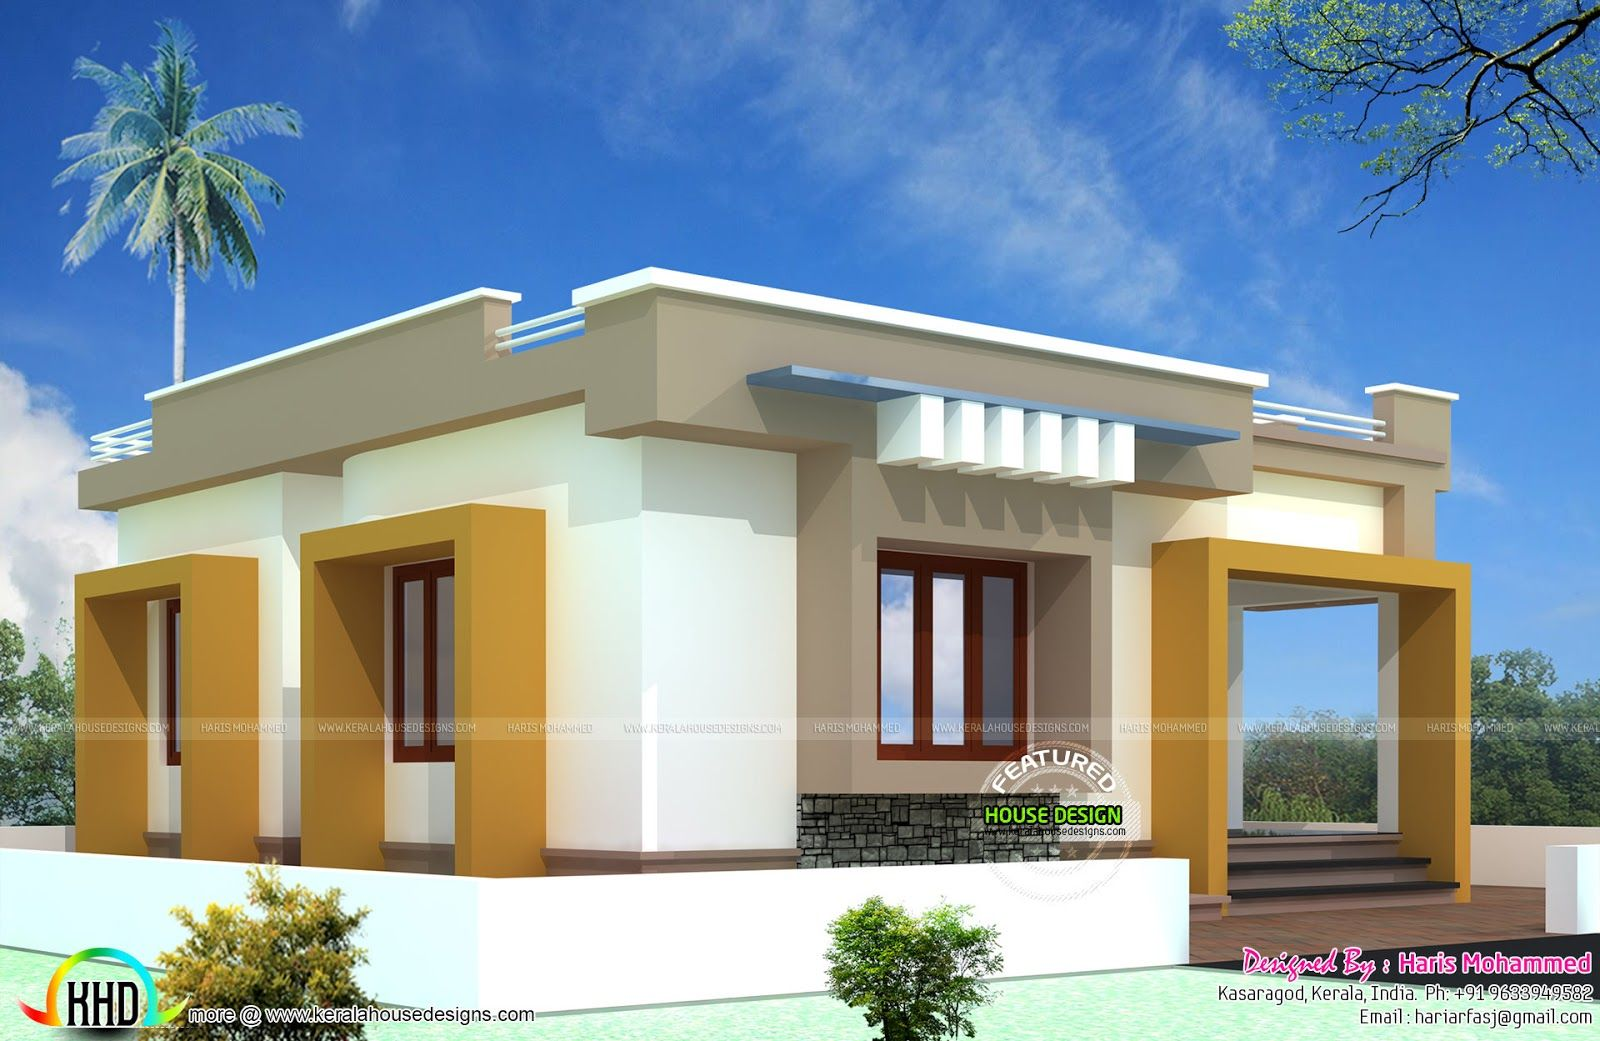 ₹10 lakhs budget smallbudget single floor house in an area of 812 square feet by haris mohammed kasaragod kerala